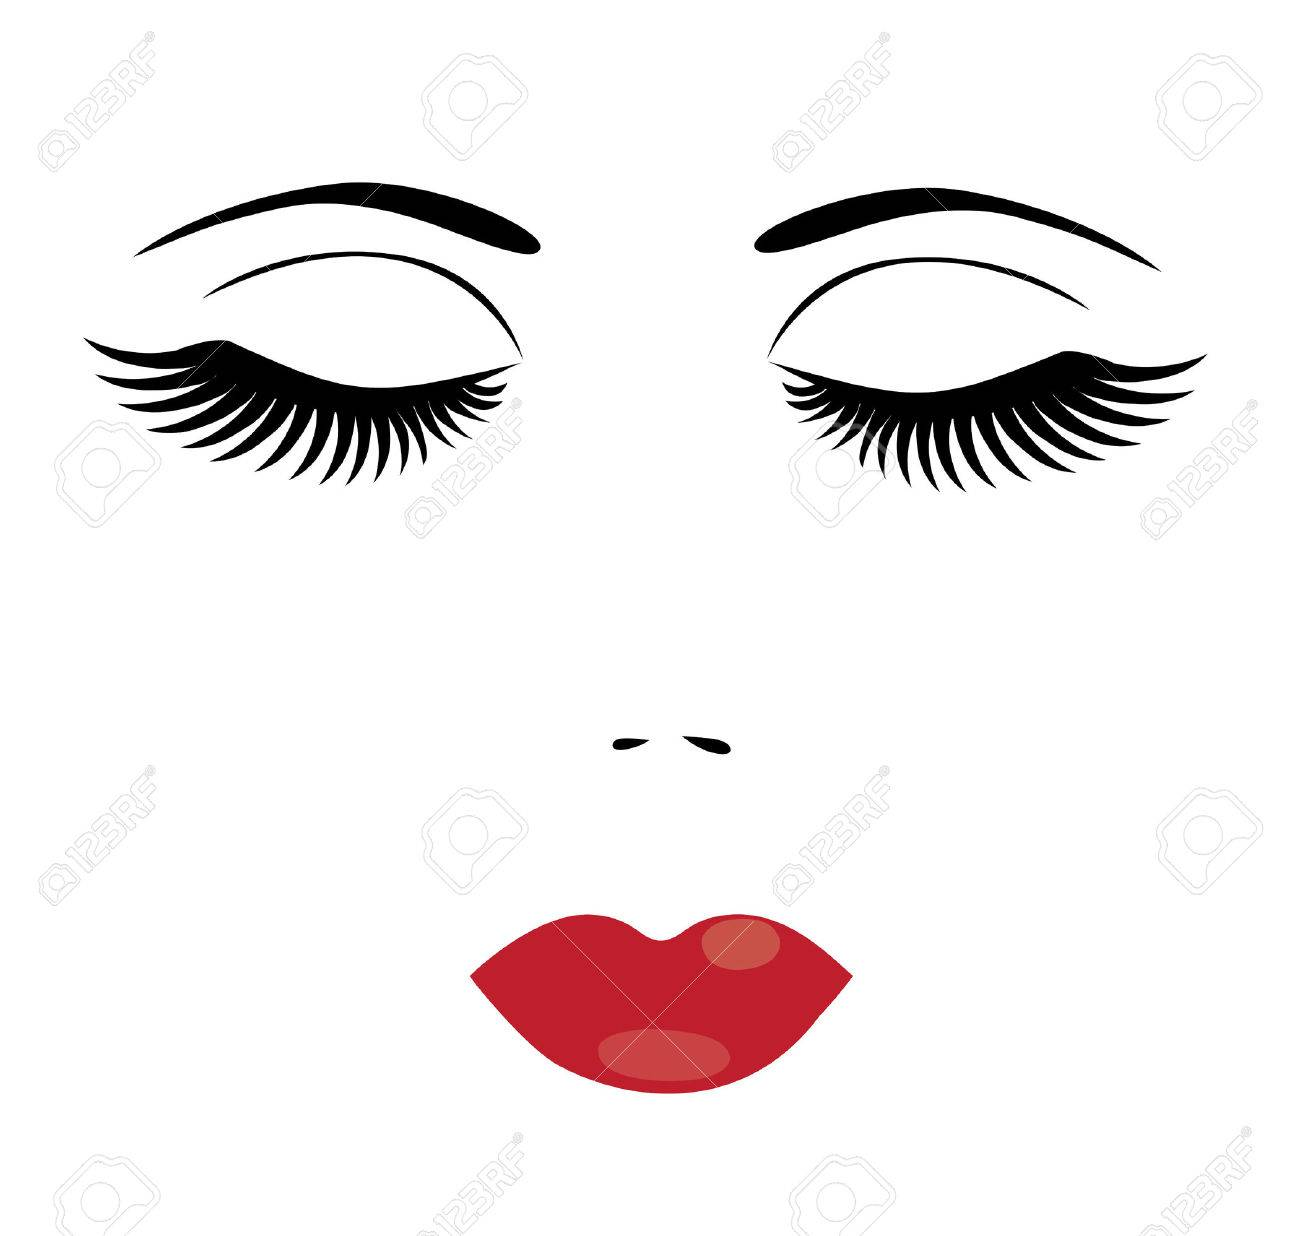 illustration of a face of a woman with long lashes and red lips.